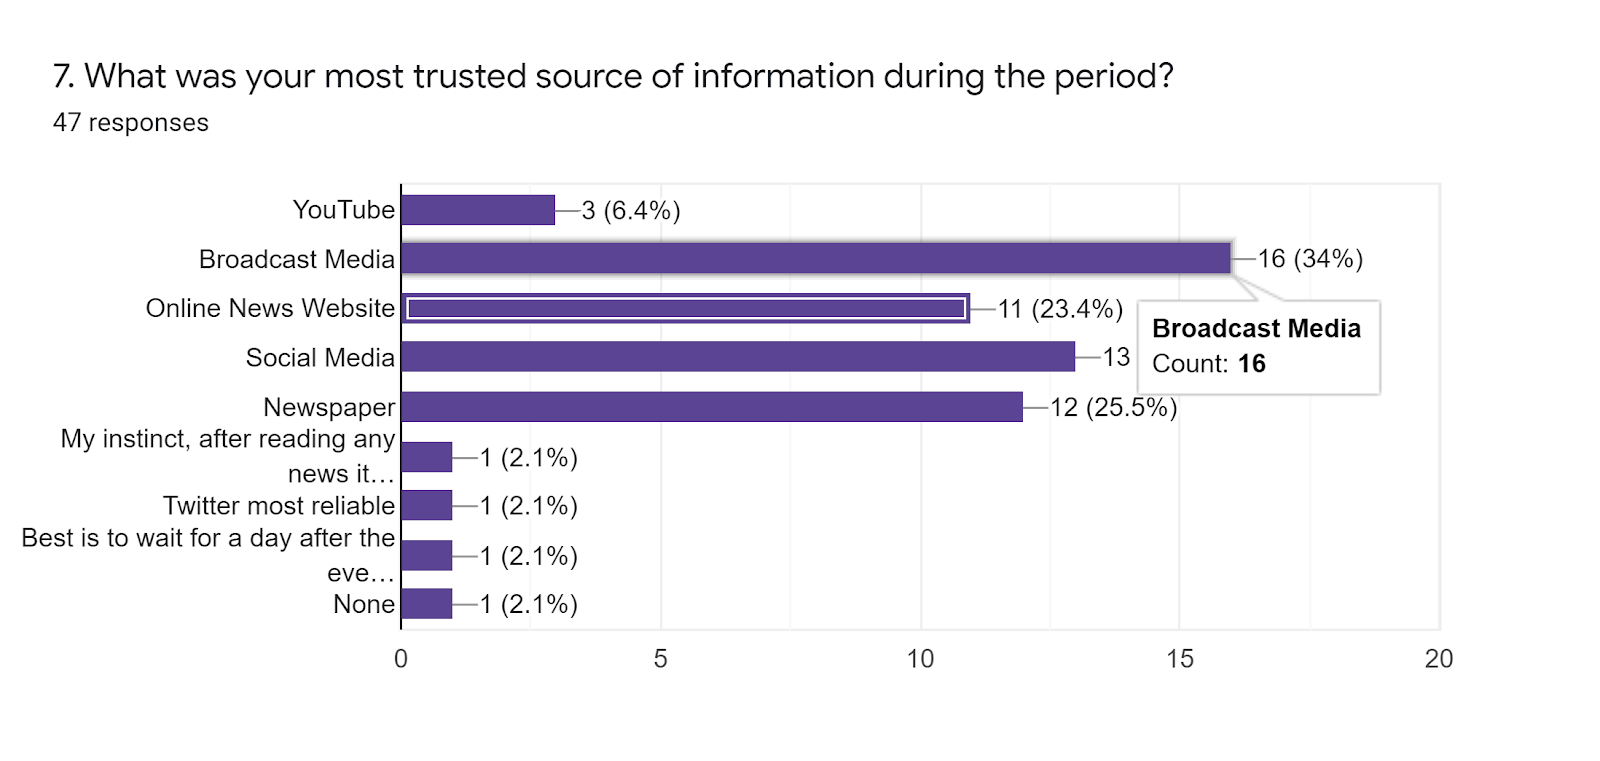 Forms response chart. Question title: 7. What was your most trusted source of information during the period?. Number of responses: 47 responses.